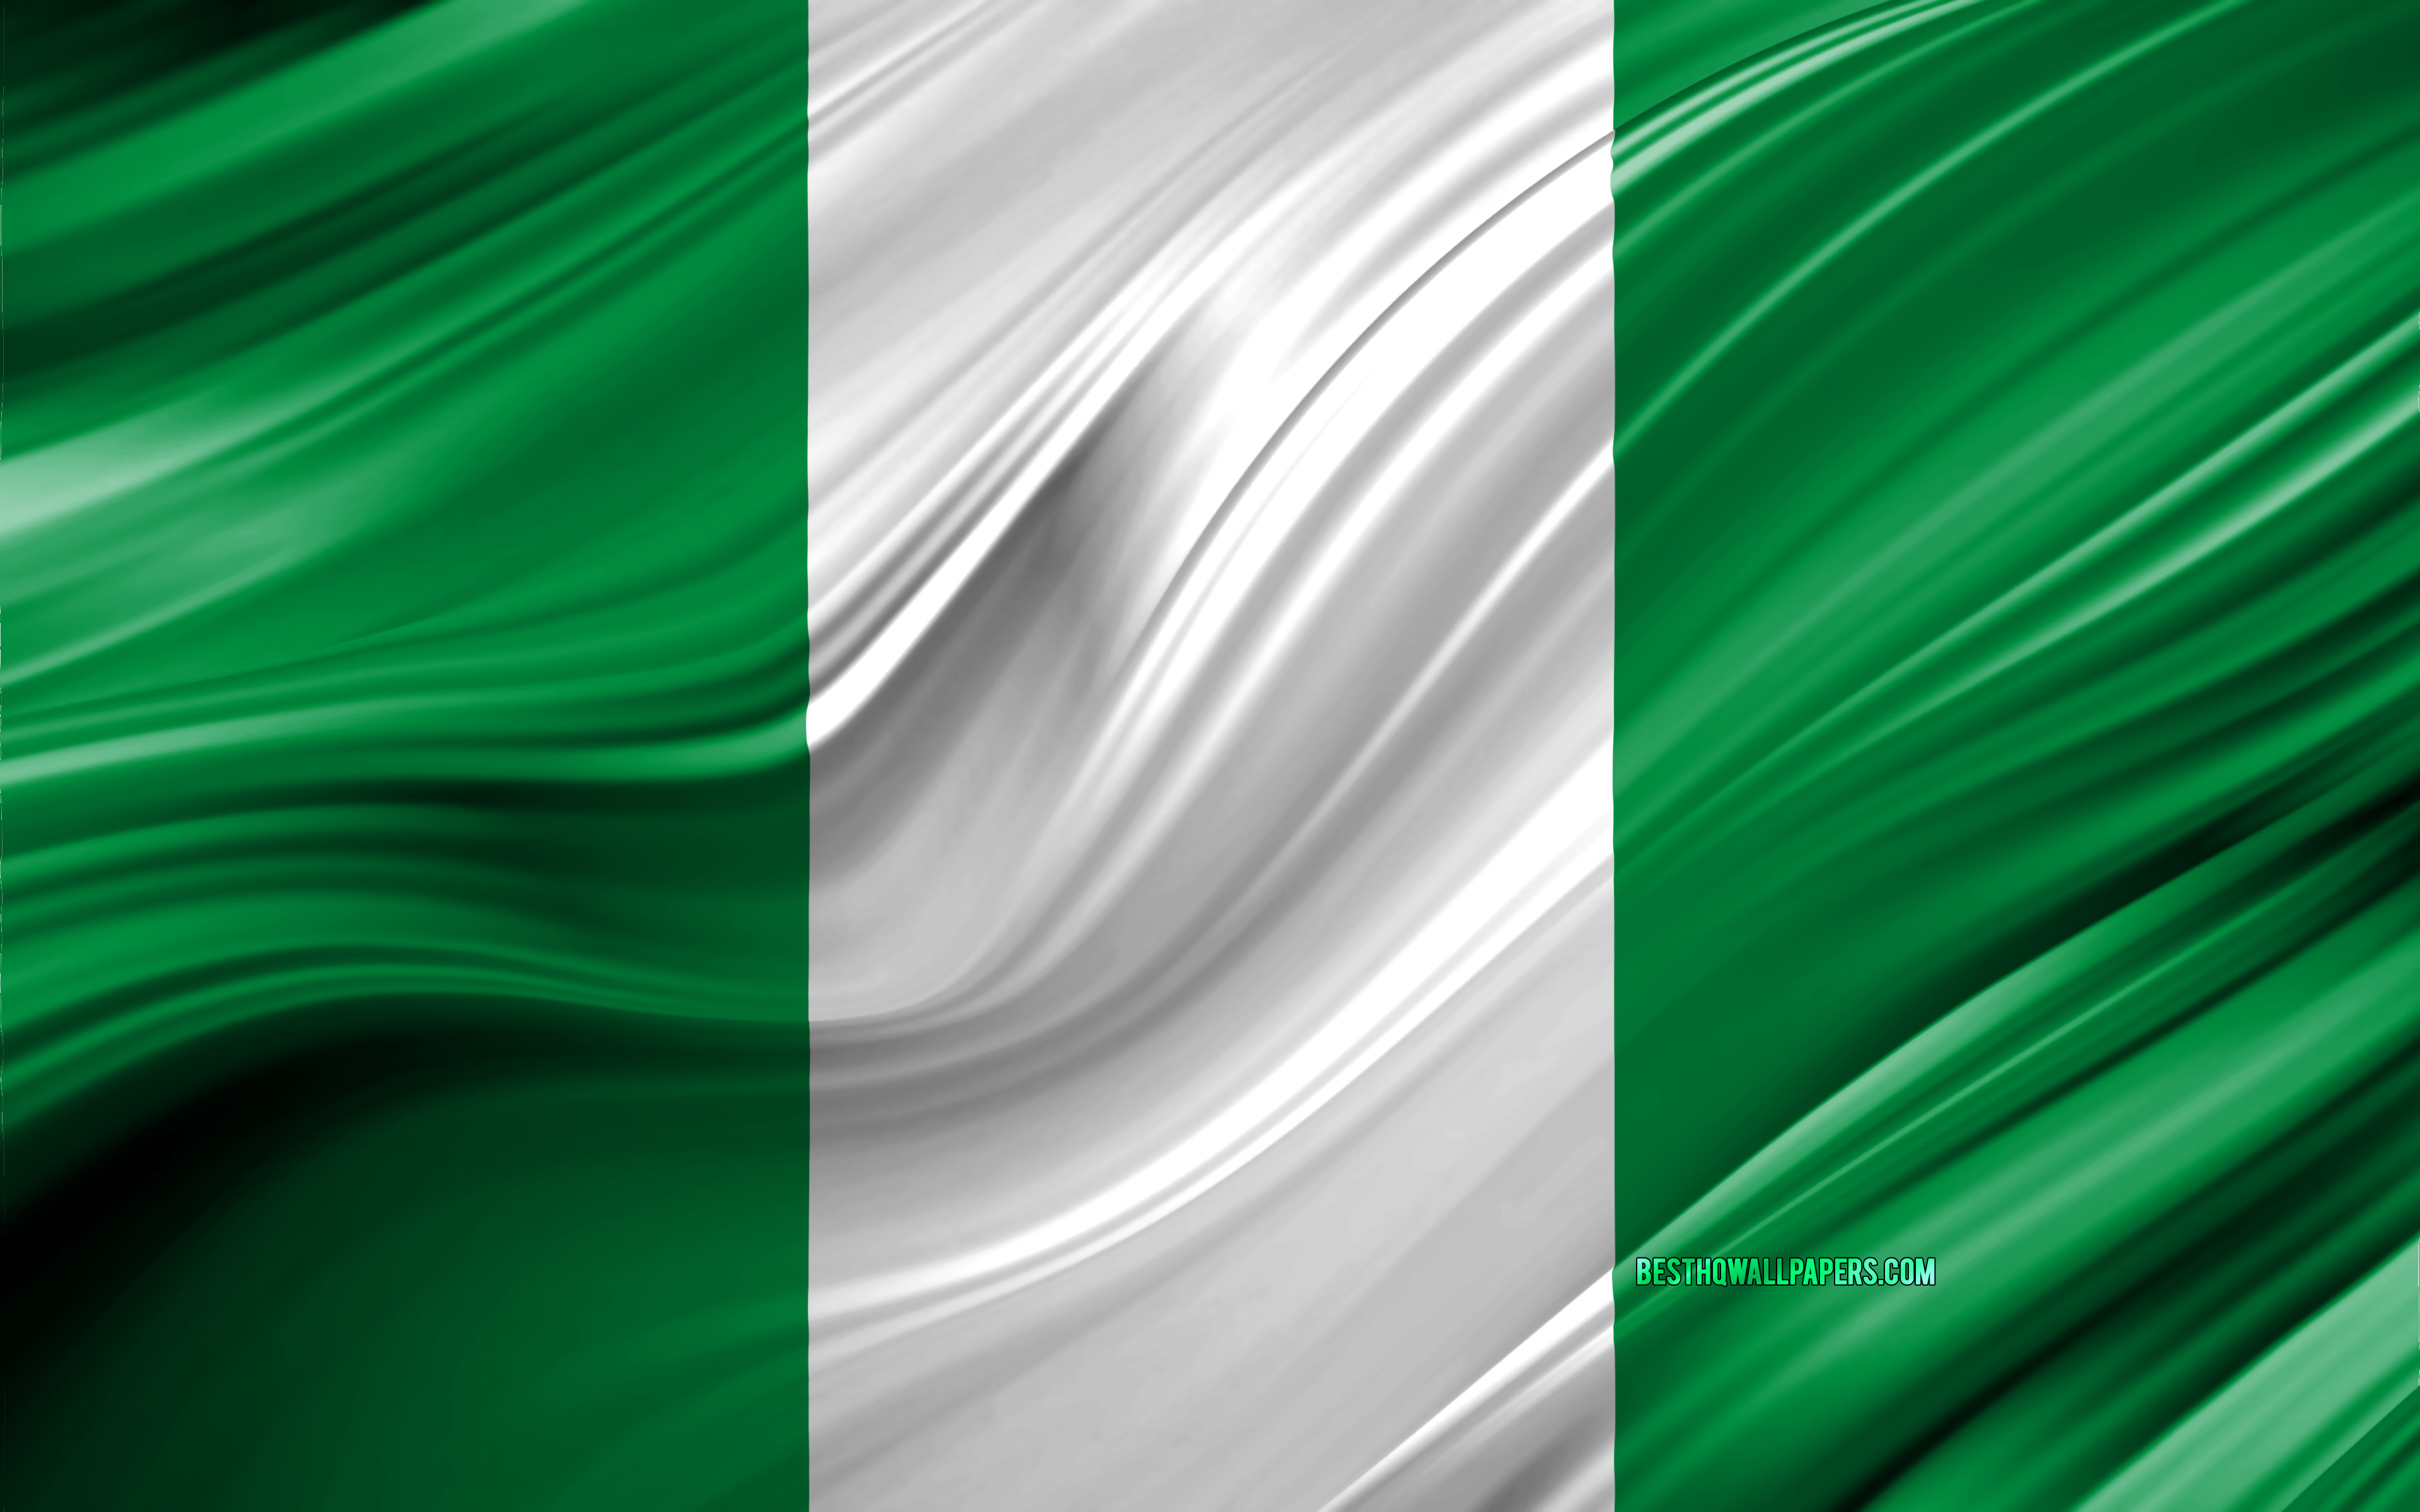 4k, Nigerian flag, African countries, 3D waves, Flag of Nigeria, national symbols, Nigeria 3D flag, art, Africa, Nigeria